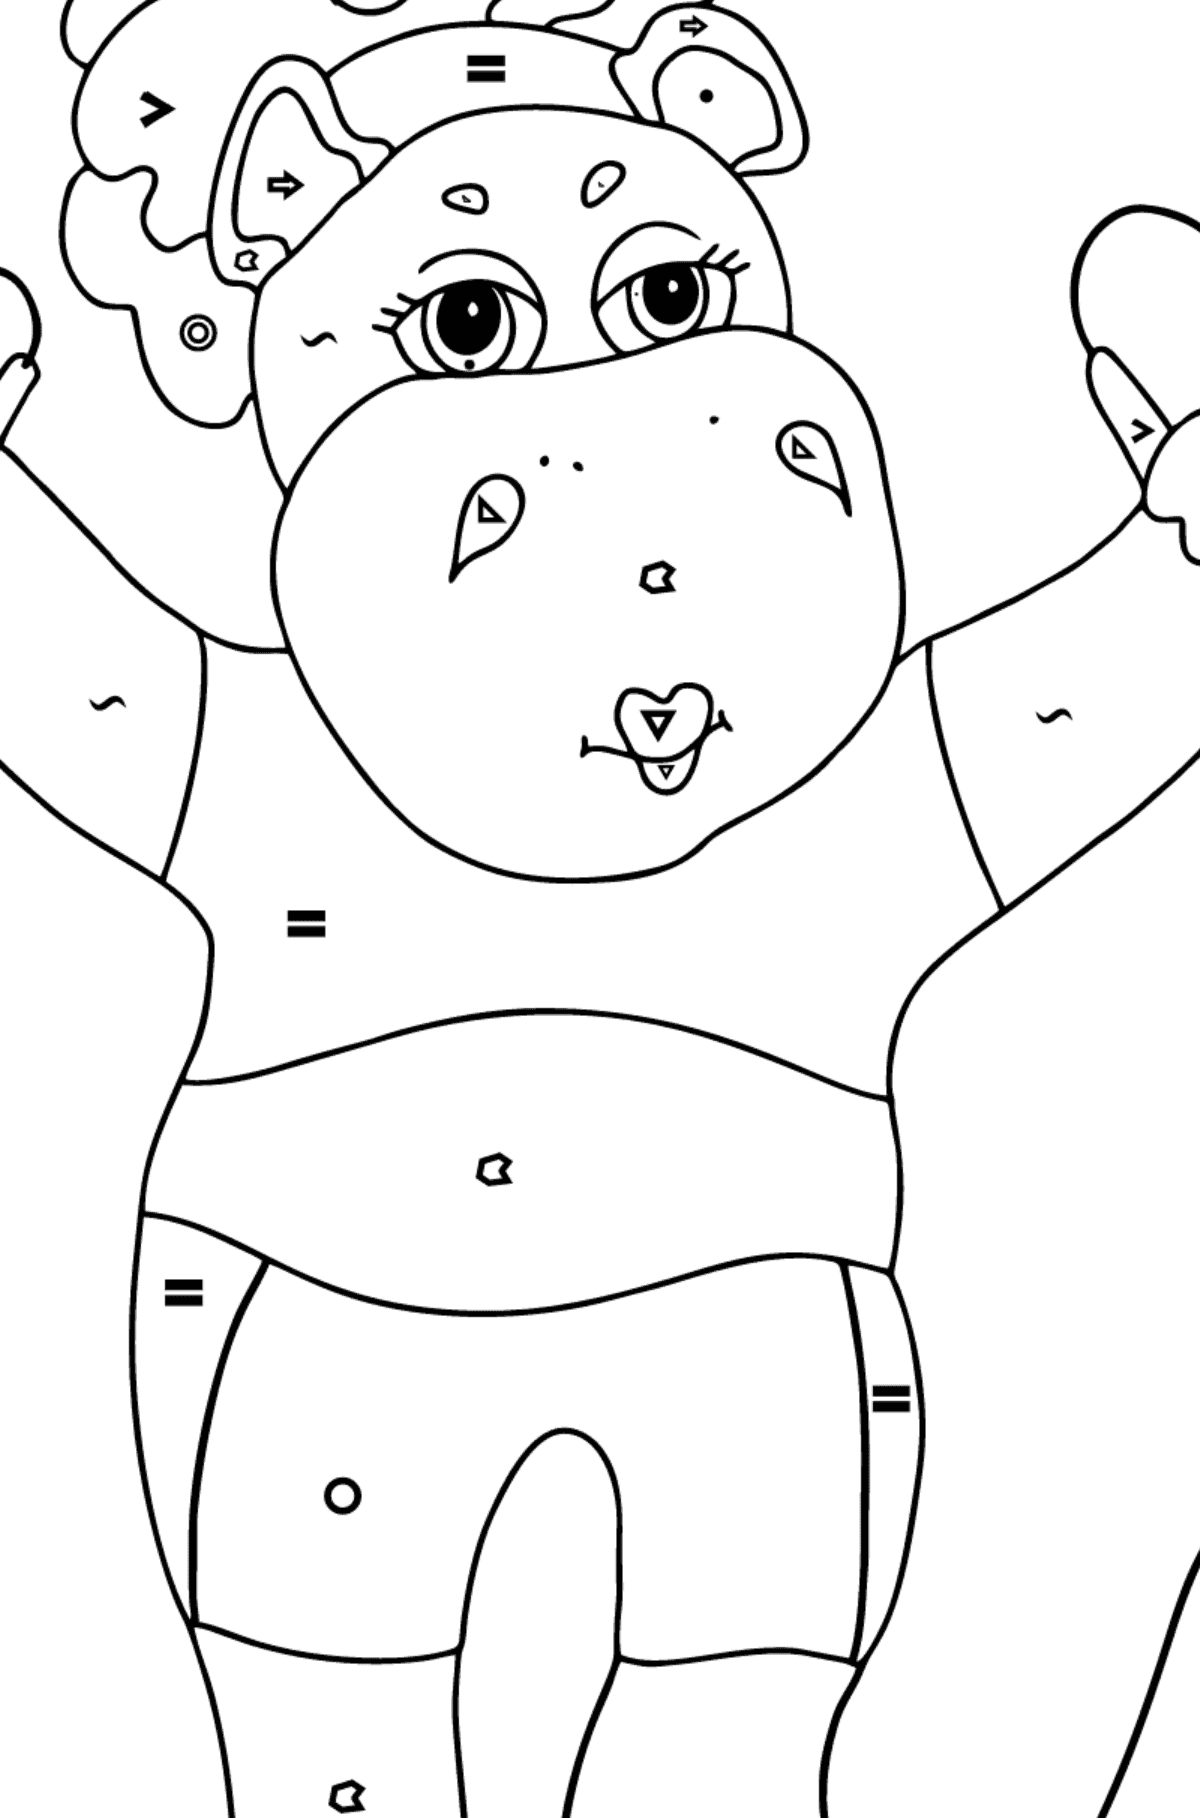 Coloring Page - A Hippo is Jumping on a Rope for Children  - Color by Symbols and Geometric Shapes